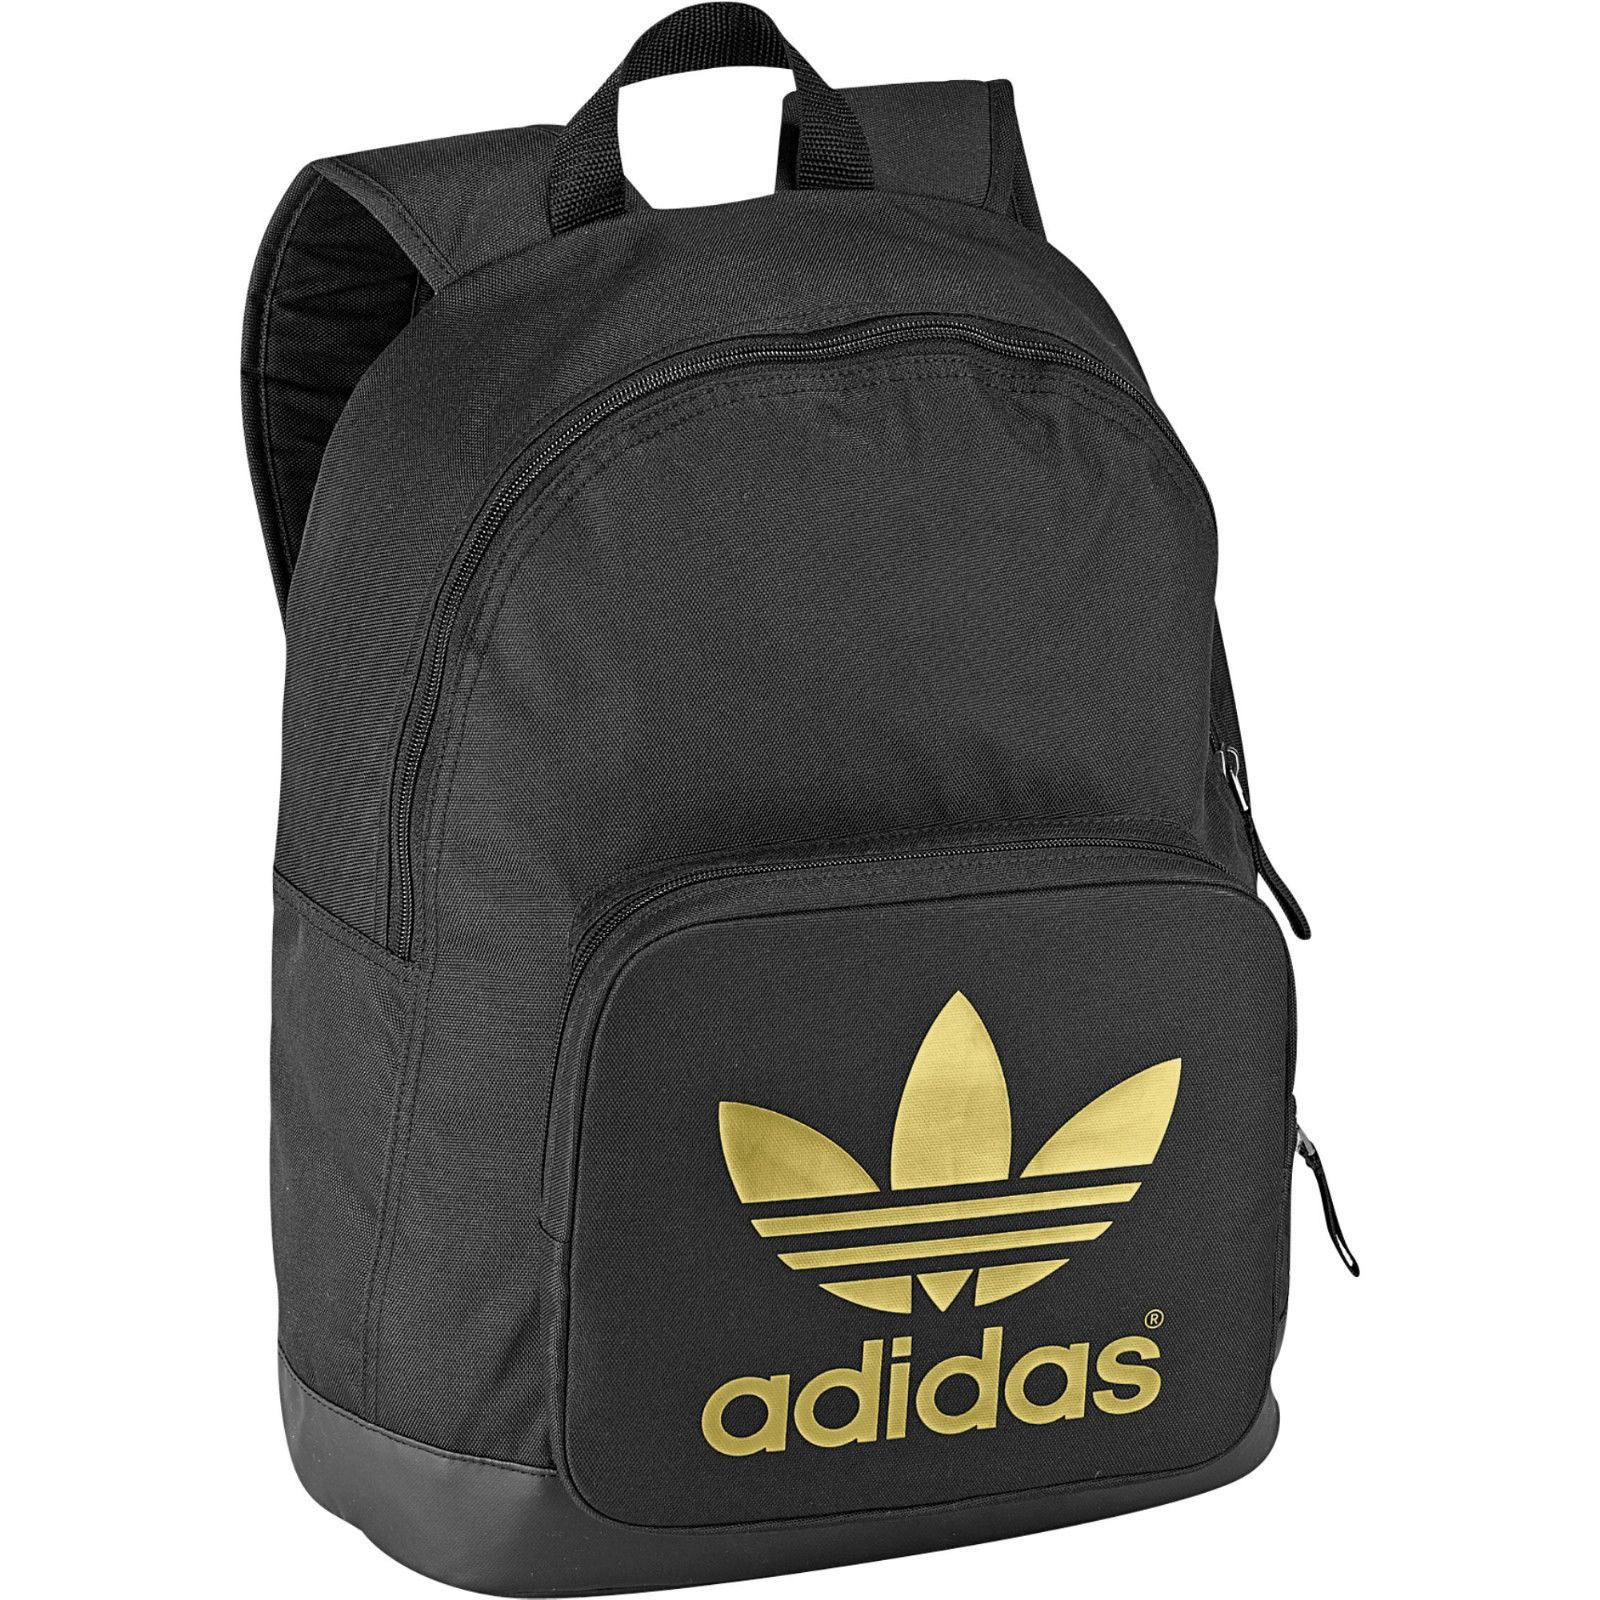 4ca0b9b228 Adidas Originals Backpacks Mens Boys Girls Adidas School Backbags Rucksacks